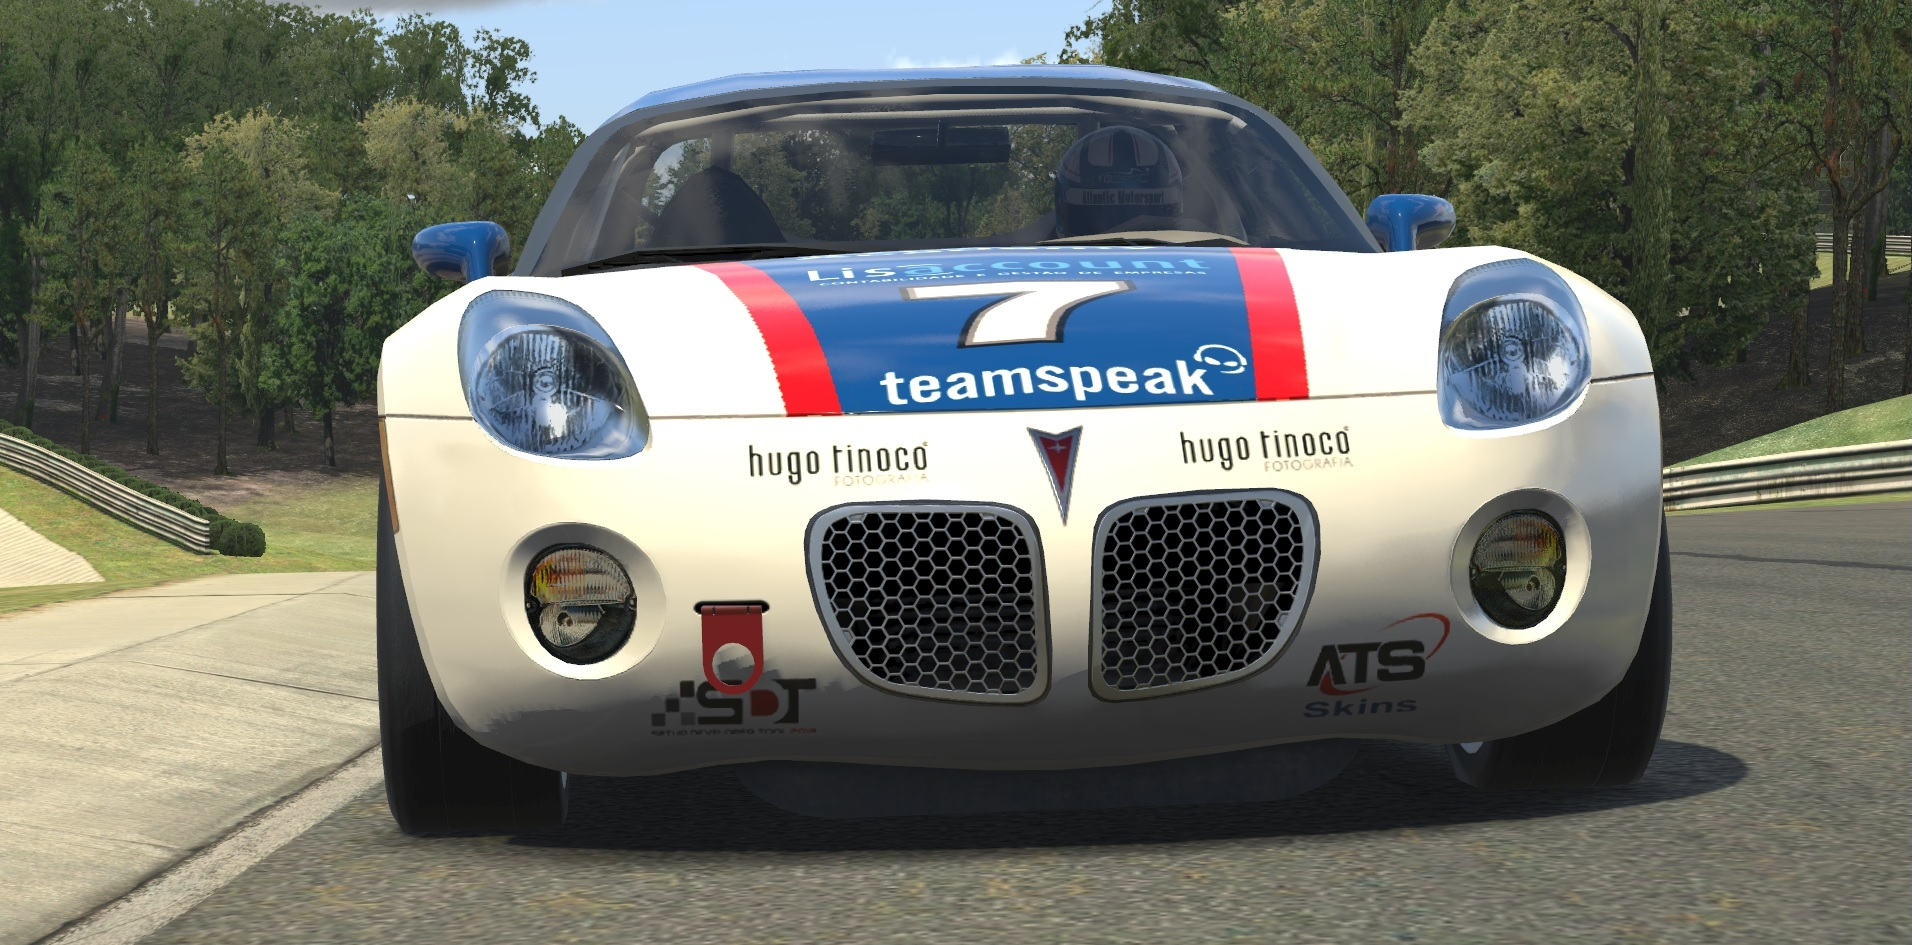 Atlantic Academy presents the new Pontiac Solstice for iRacing